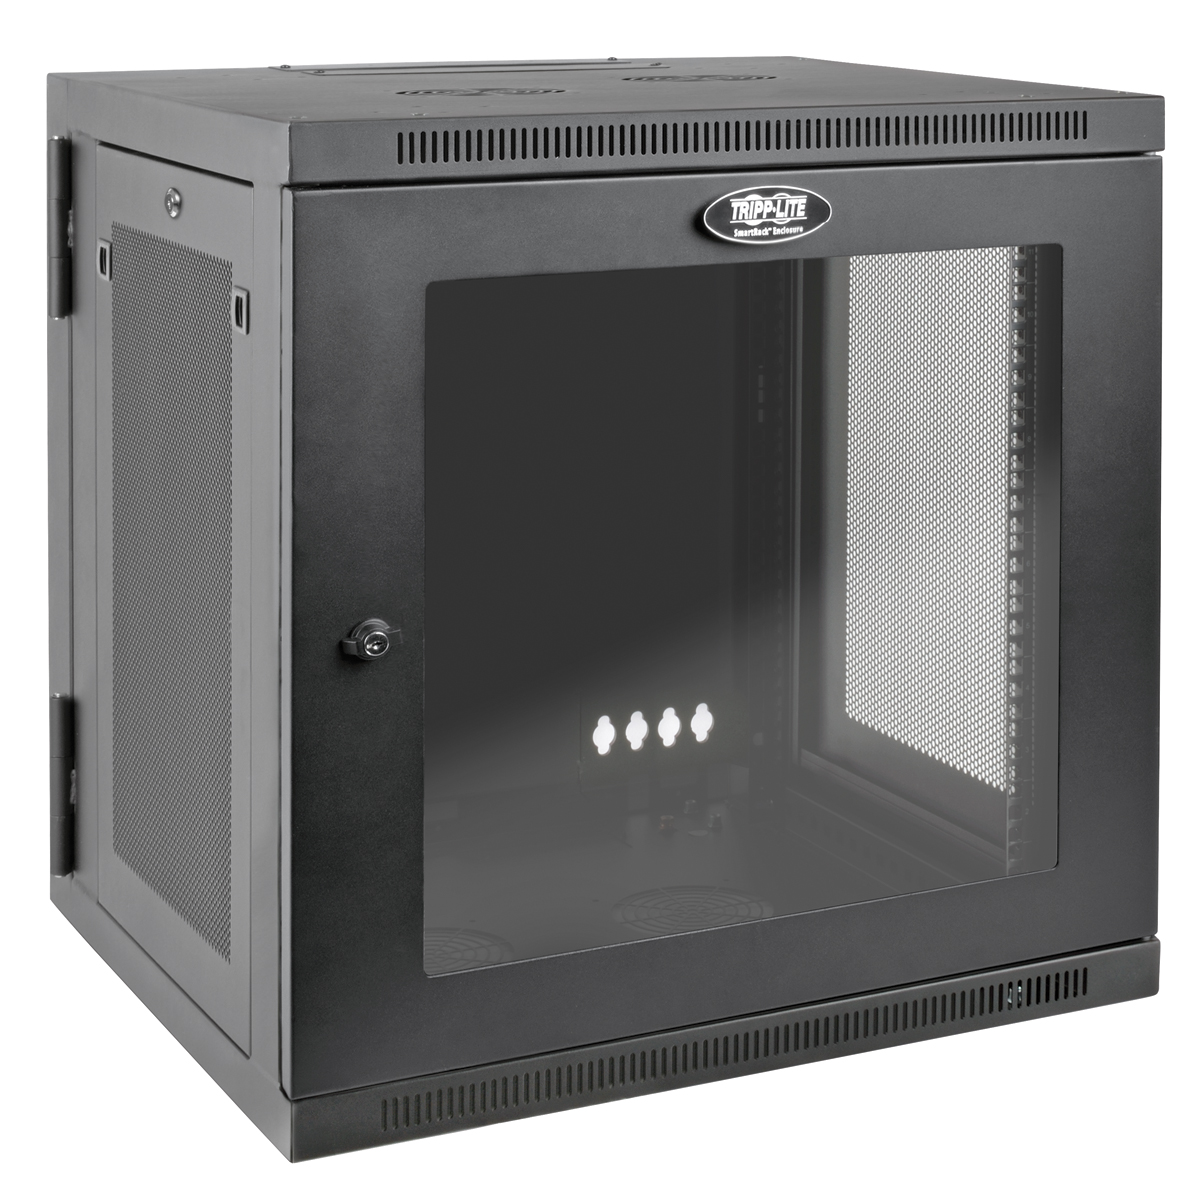 where proof rack wall equipment vented mount are outdoor fk cabinet cabinets applications dust rodw ideal server racks